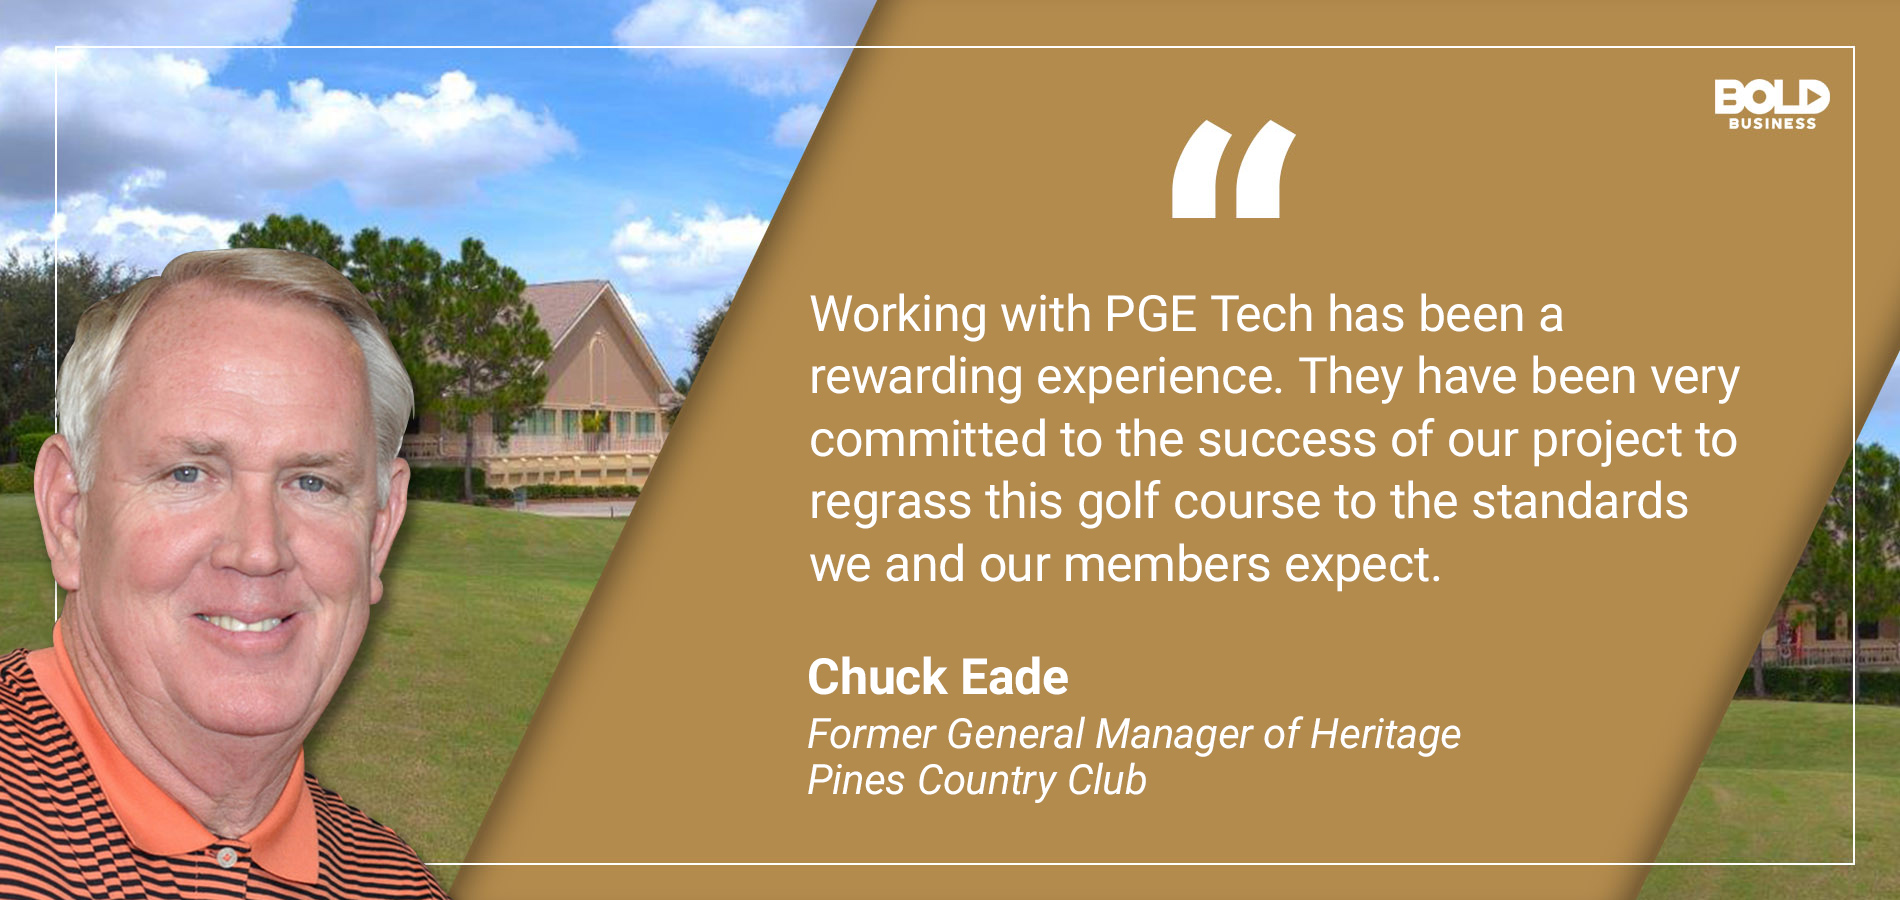 a photo quote of Chuck Eade on the effectiveness of nutrition manufacturer PGE Tech's innovative product